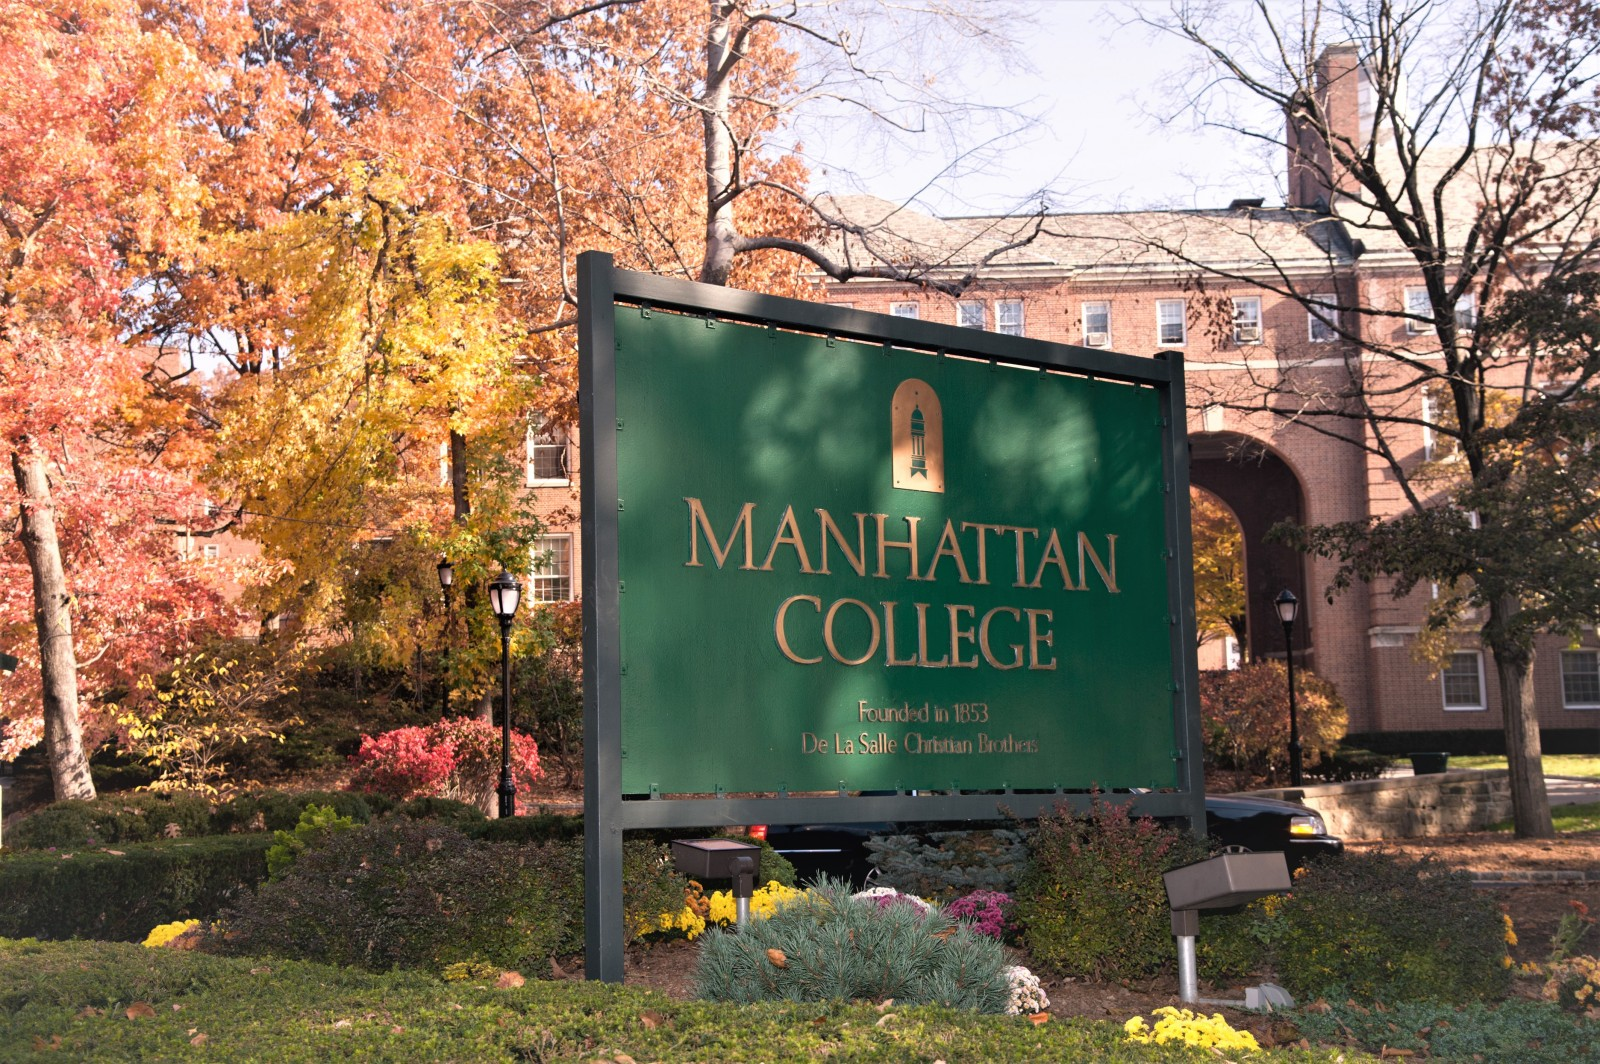 Manhattan College Main Sign at Front of College